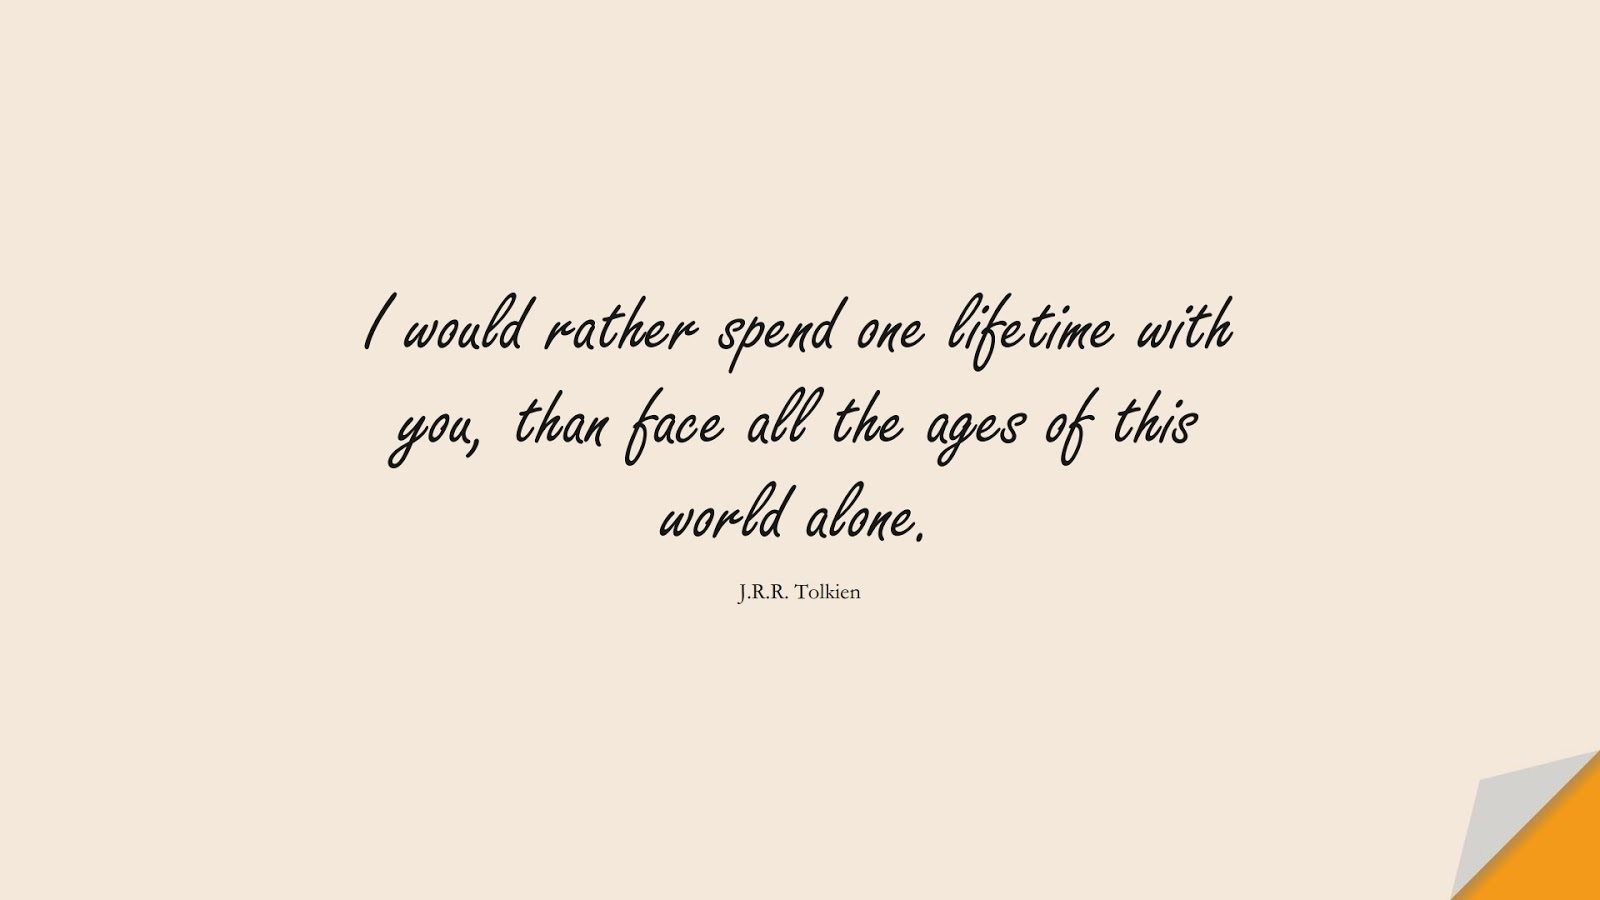 I would rather spend one lifetime with you, than face all the ages of this world alone. (J.R.R. Tolkien);  #LoveQuotes